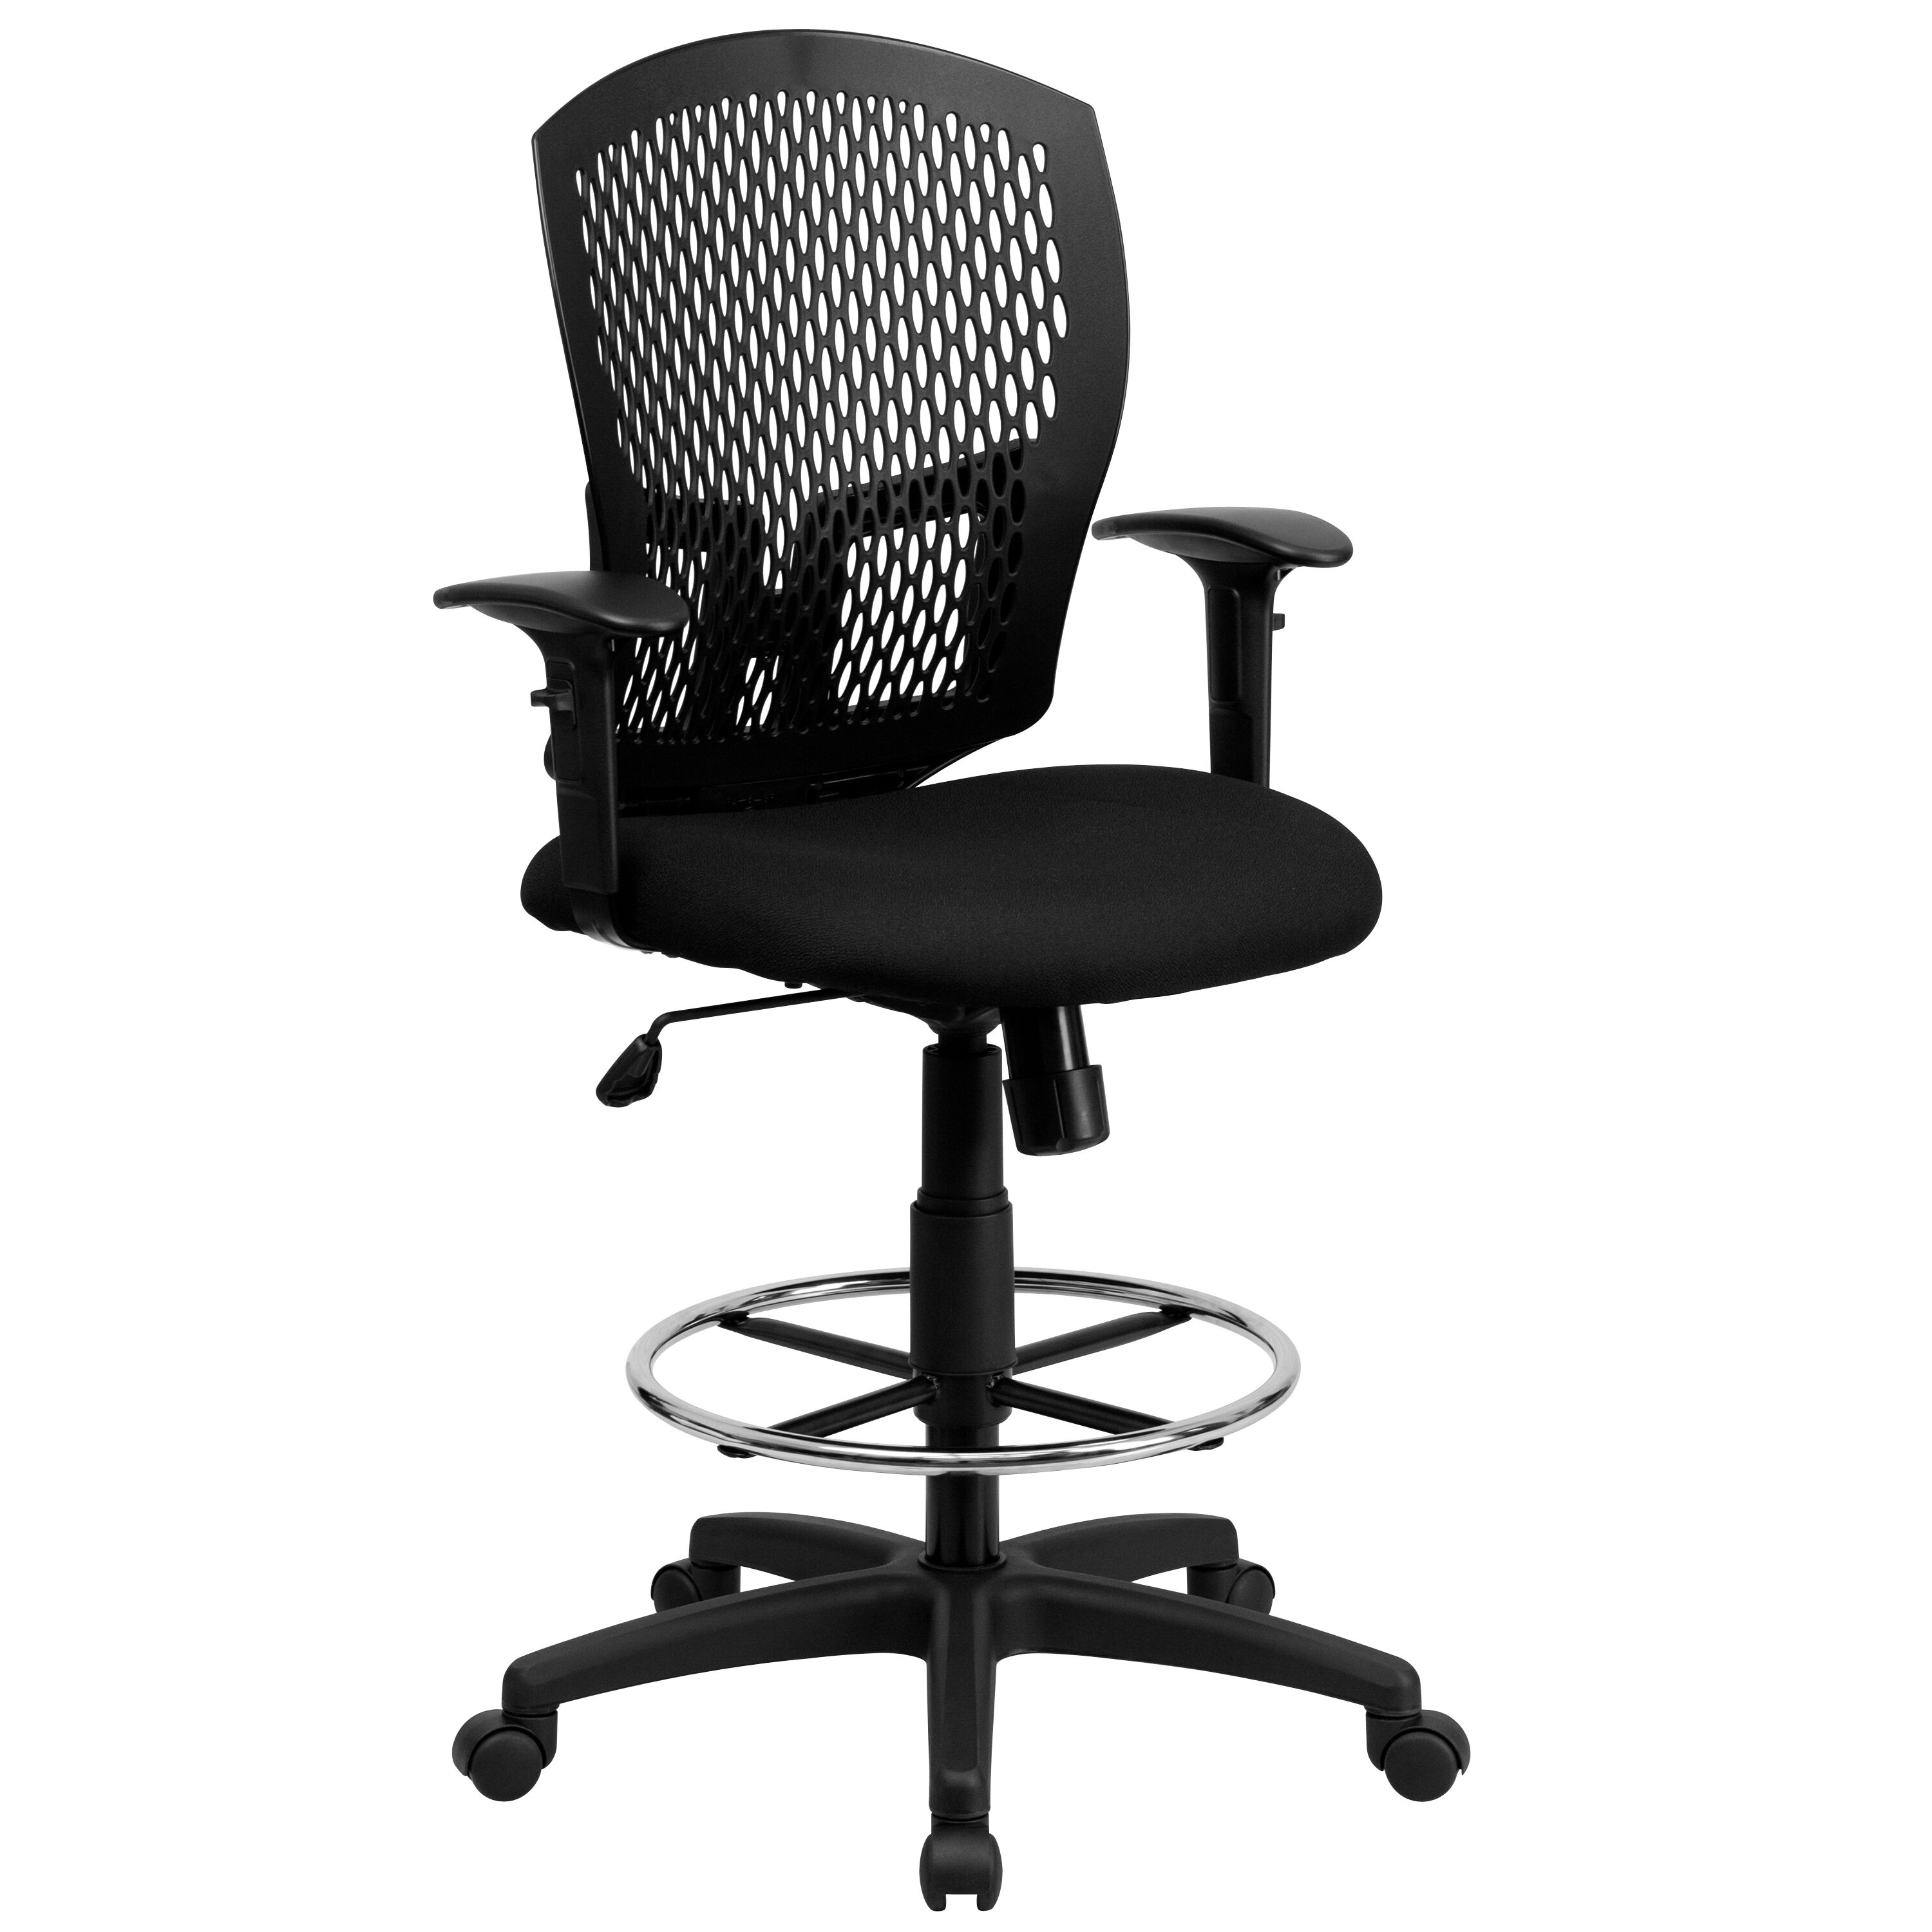 drafting chairs with arms 30 second chair stand results black designer draft wl 3958syg bk ad gg schoolfurniture4less com